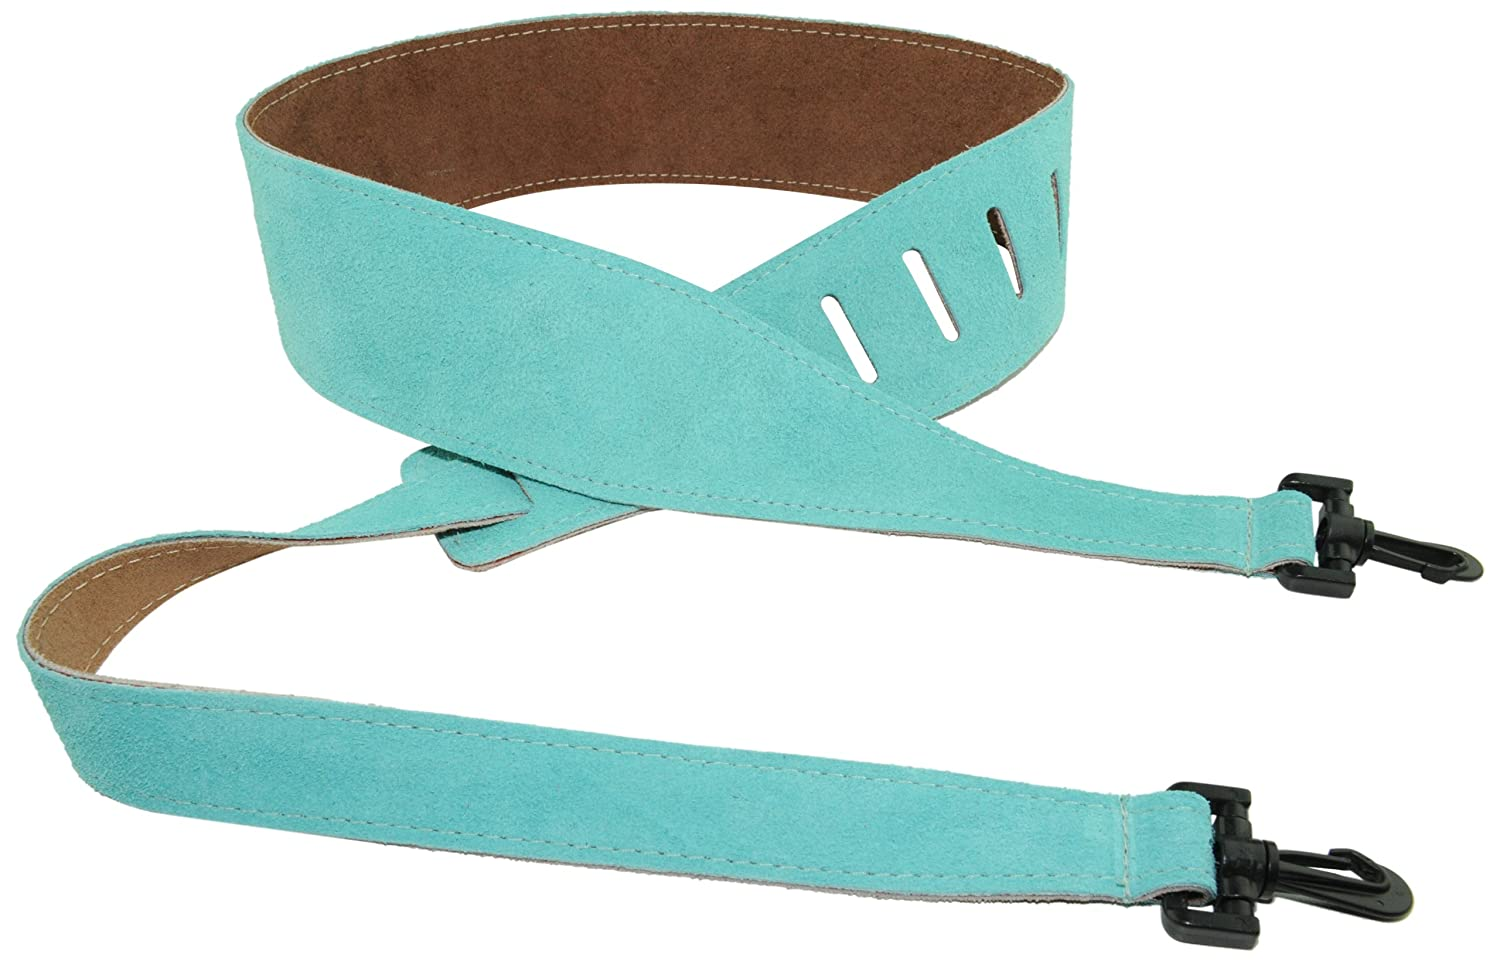 Perris Leathers P25SBJ-209 2.5-Inch Soft Suede Banjo Strap Perris Leathers LTD